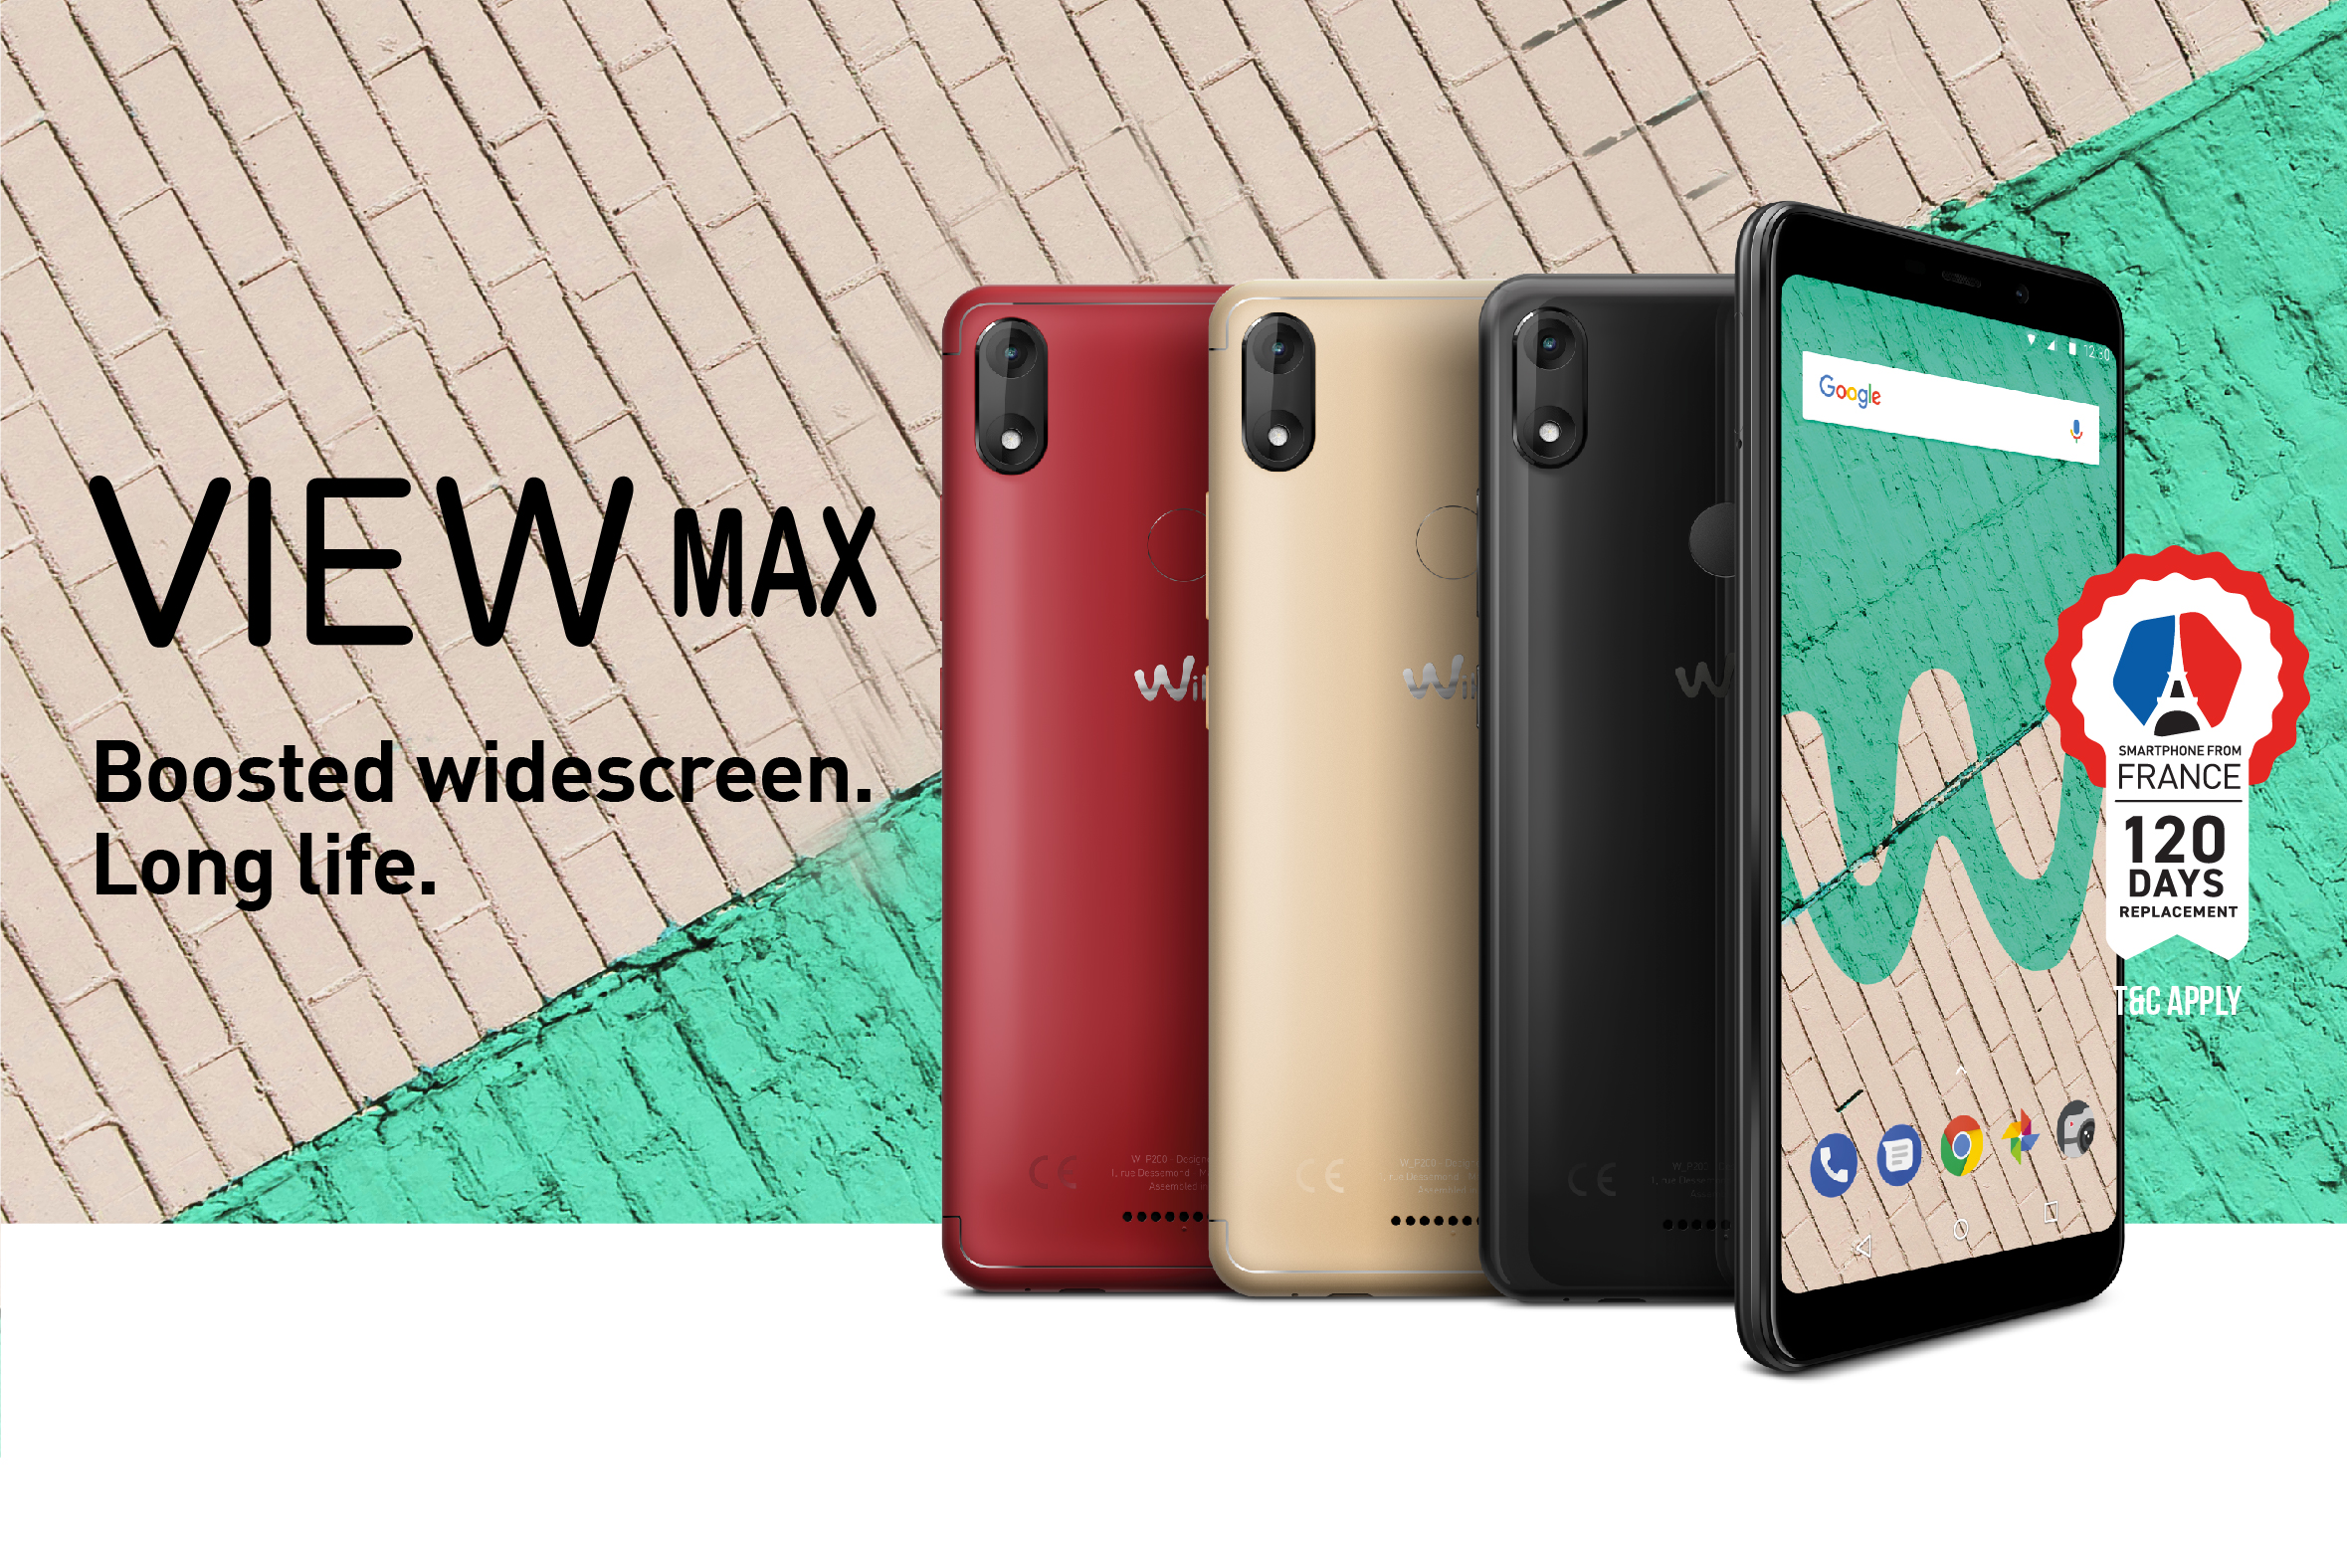 WIKO VIEW MAX - Boosted Widescreen. Long Life.